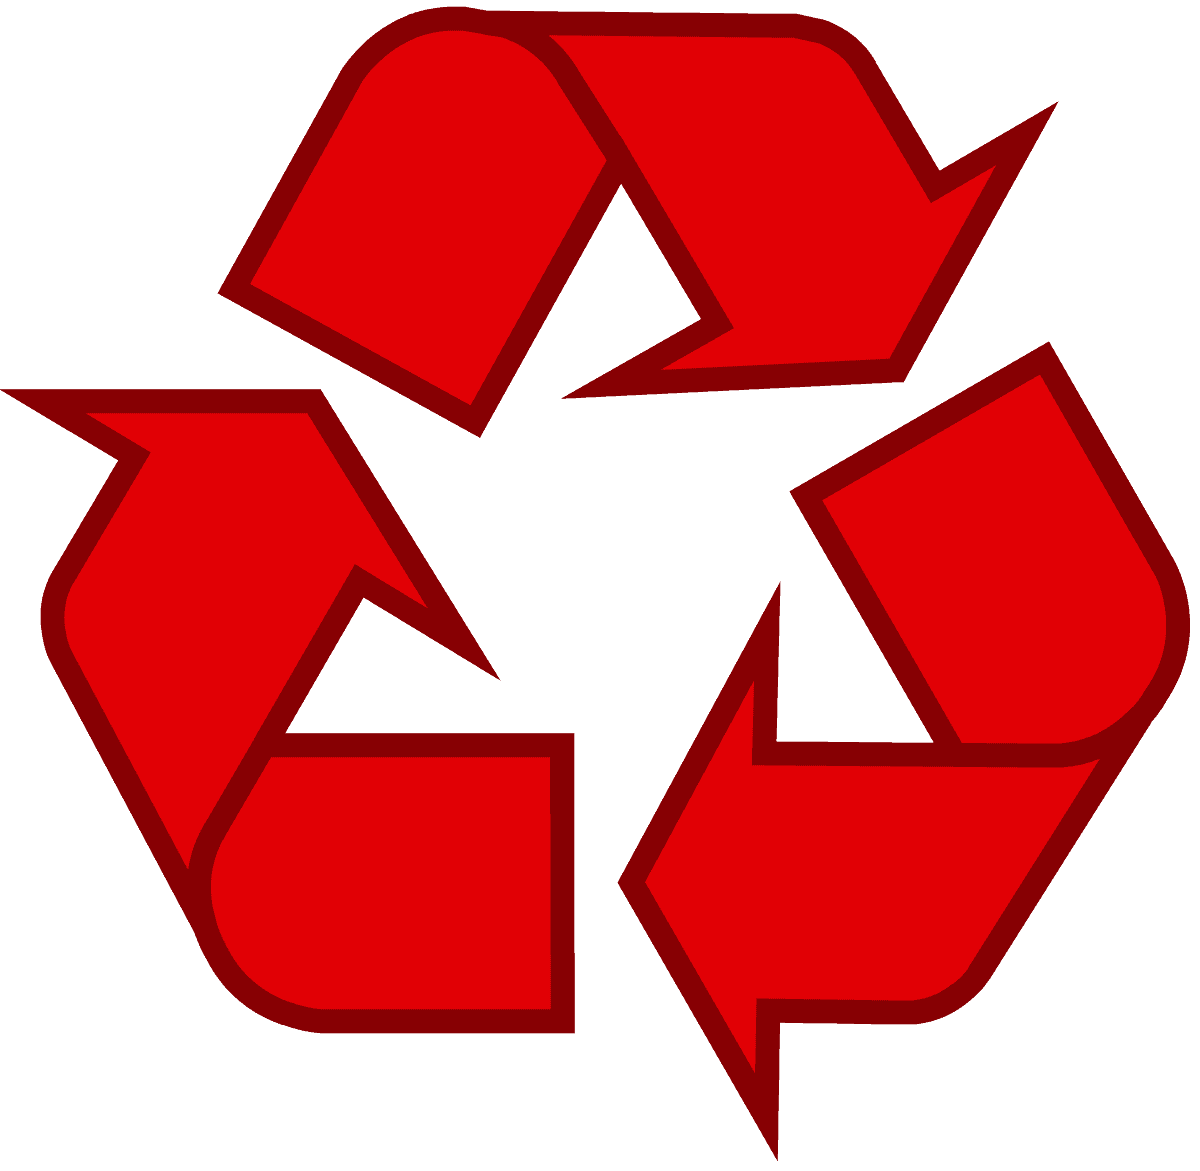 recycling-symbol-icon-outline-solid-red